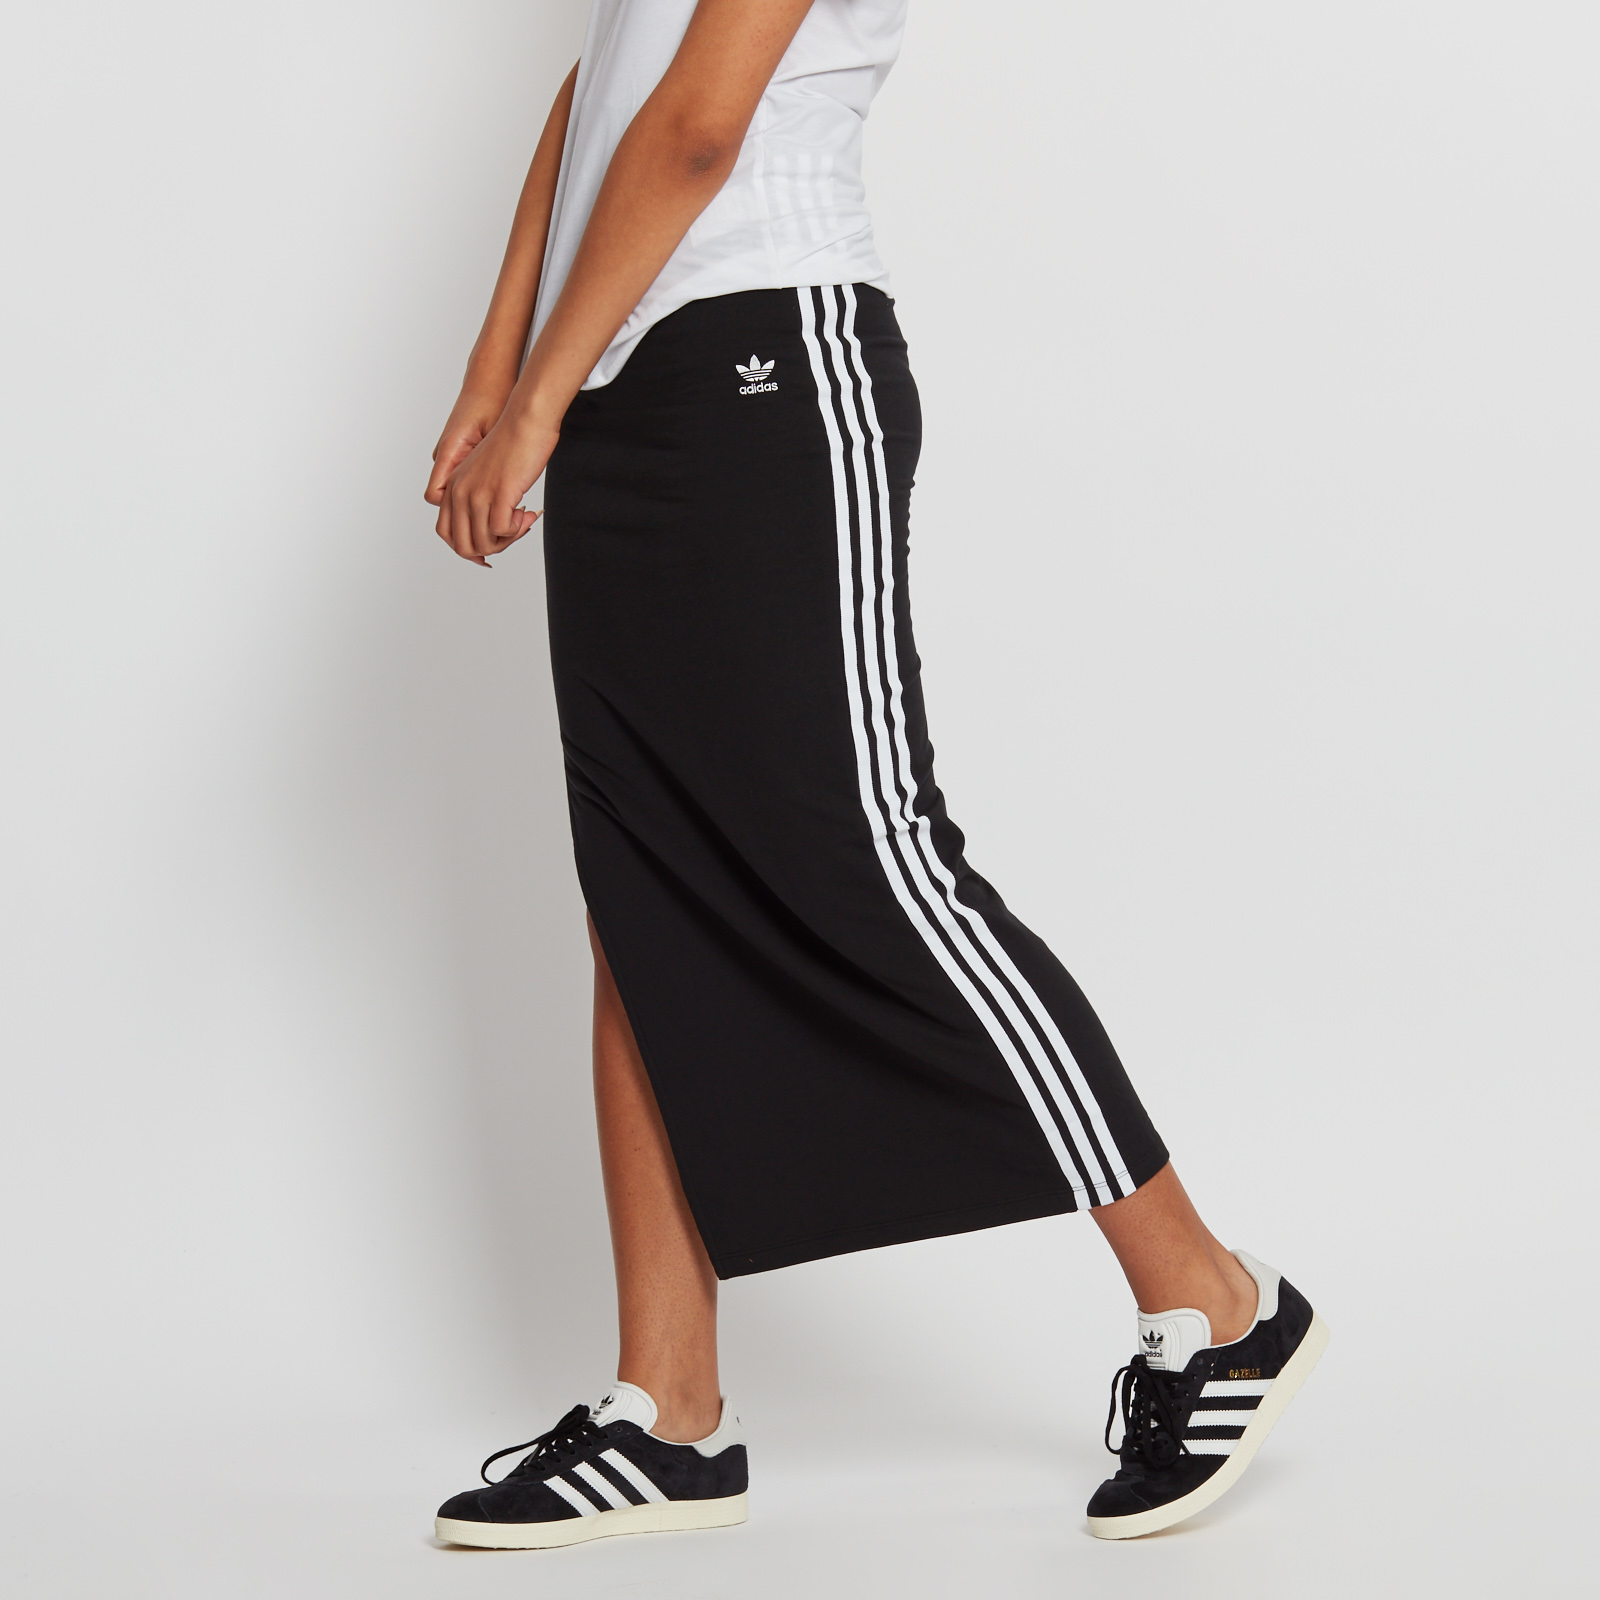 22fb7a960fb49 adidas 3 Stripes Skirt - Ay5252 - Sneakersnstuff